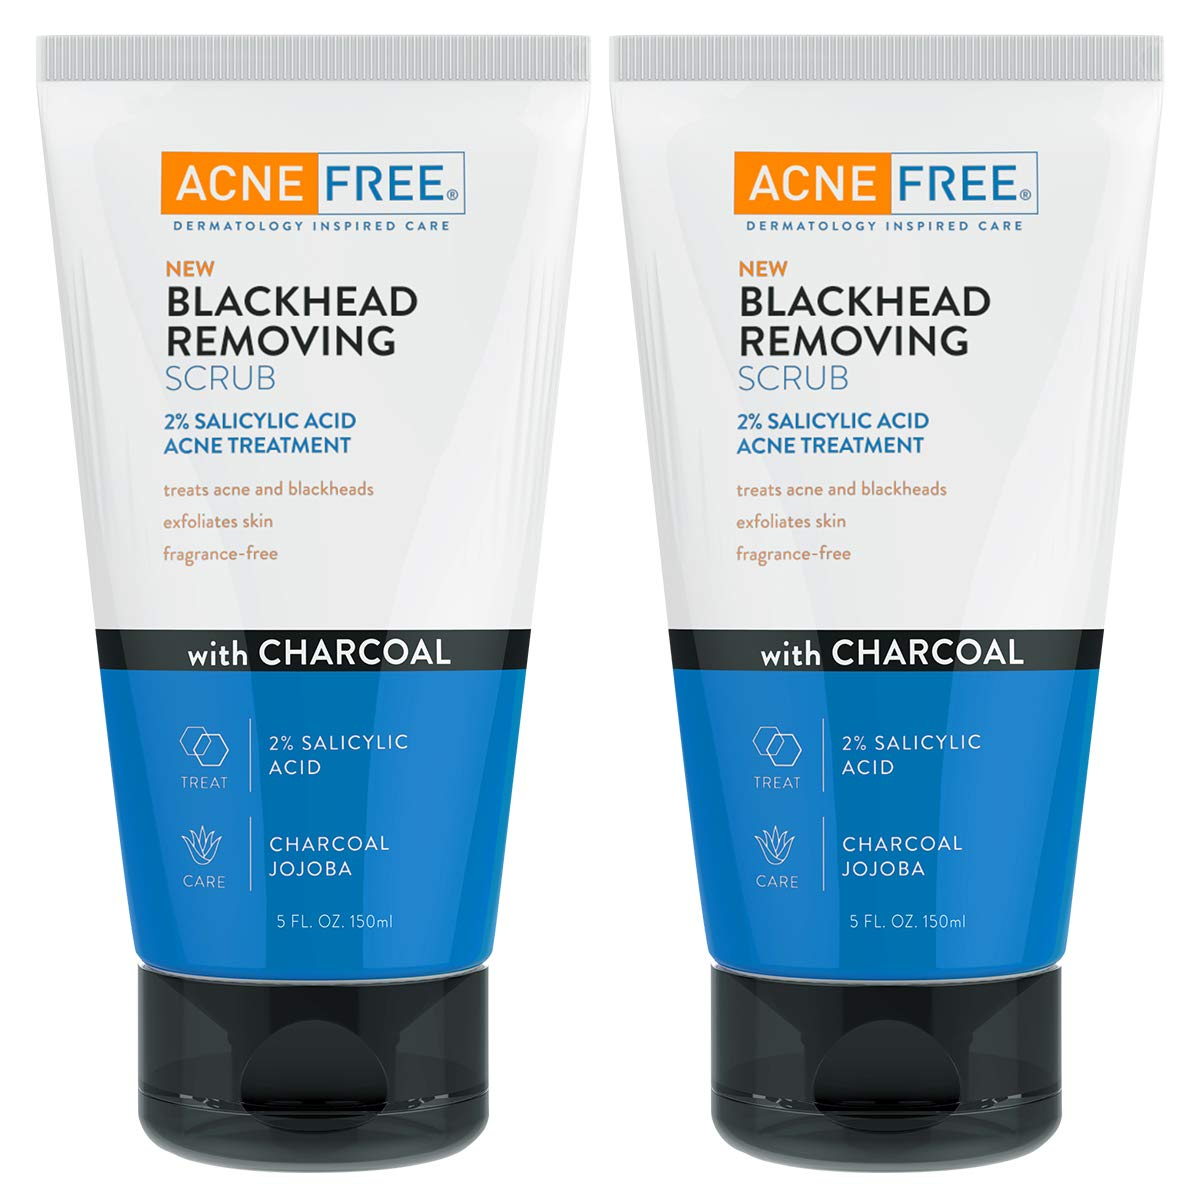 AcneFree Blackhead Exfoliating Face Scrub With 2% Salicylic Acid And Charcoal Jojoba, Pack of 2, 5 Fluid Ounce Each by AcneFree